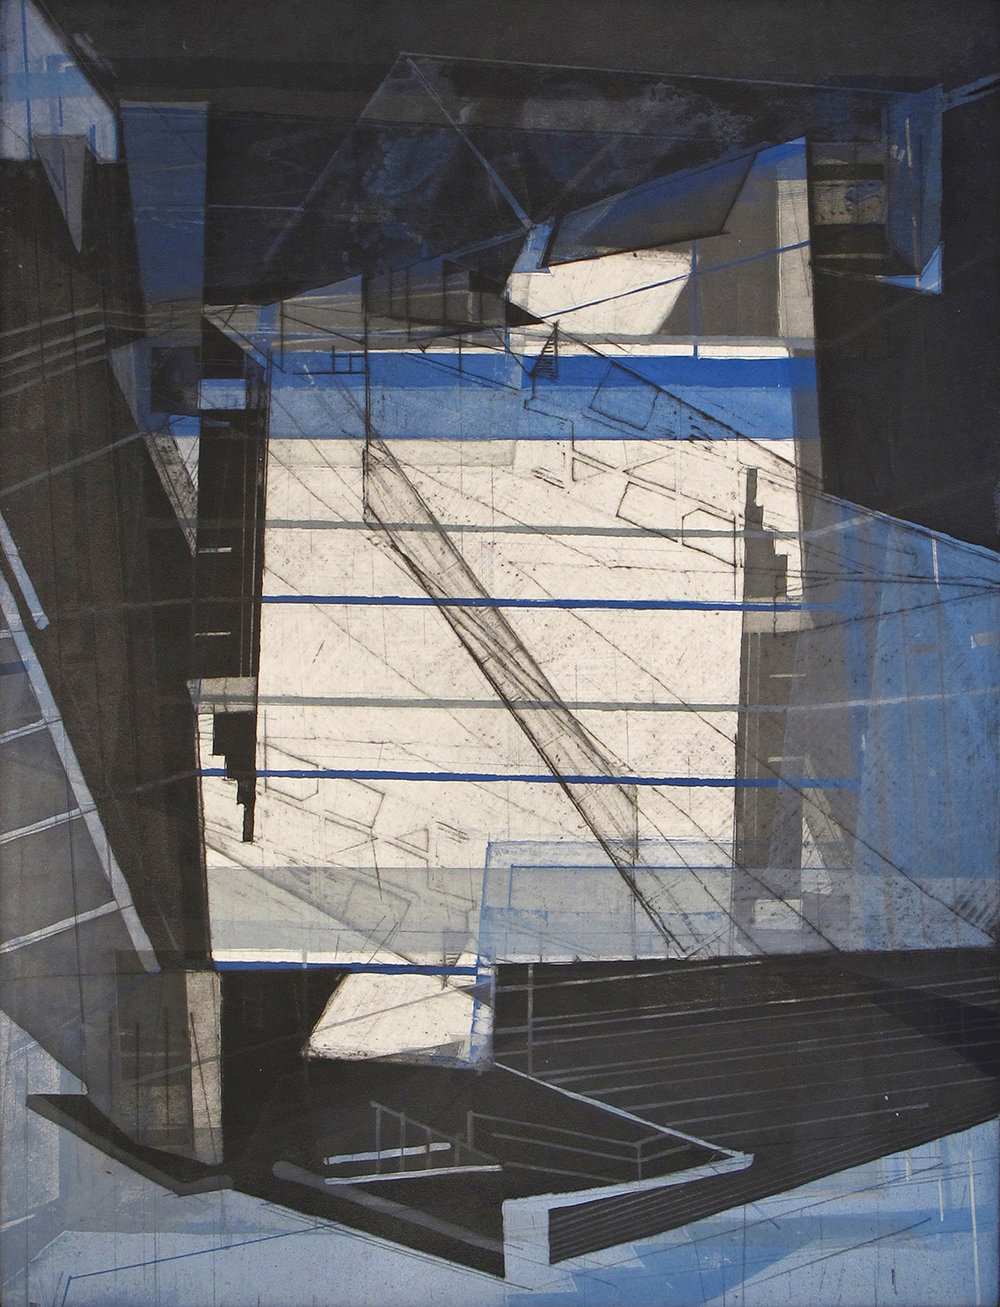 """Architectural Possibles 6   etching and aquatint  on Revere paper  image size: 24x18""""  2013"""